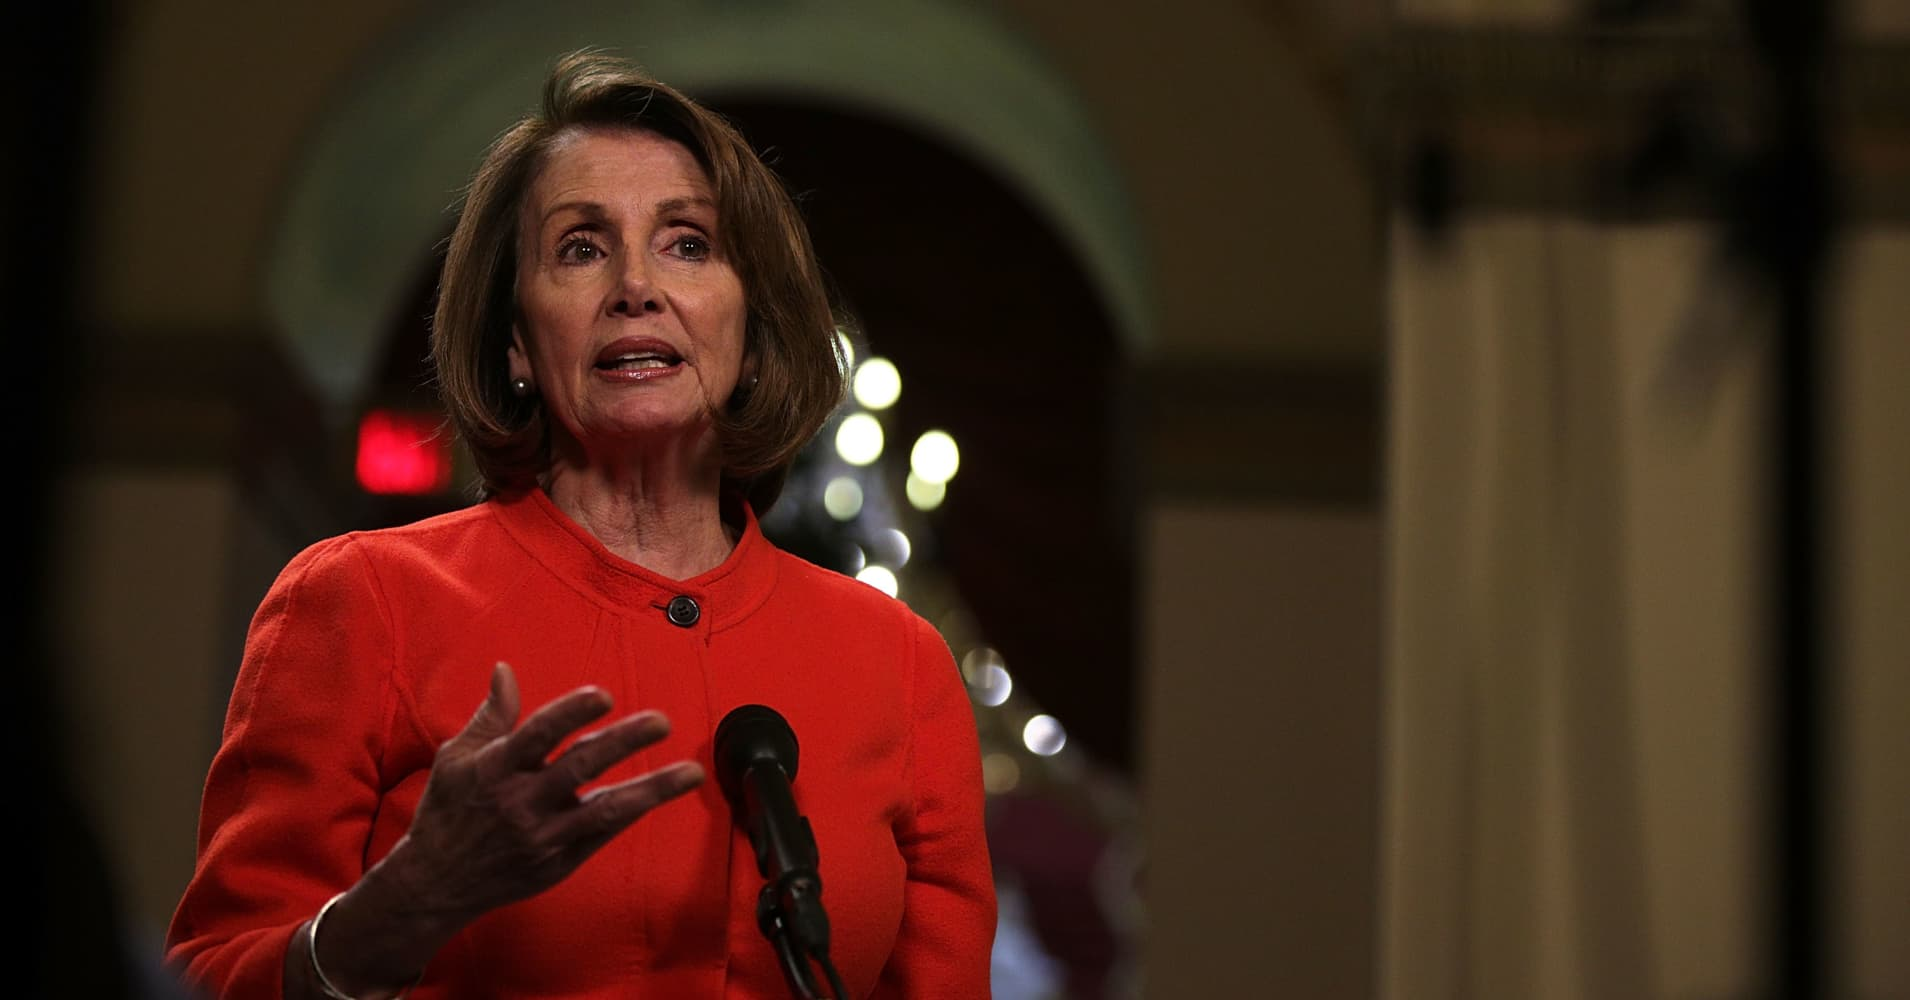 Watch: House Dem leader Pelosi on where things stand with GOP health-care bill